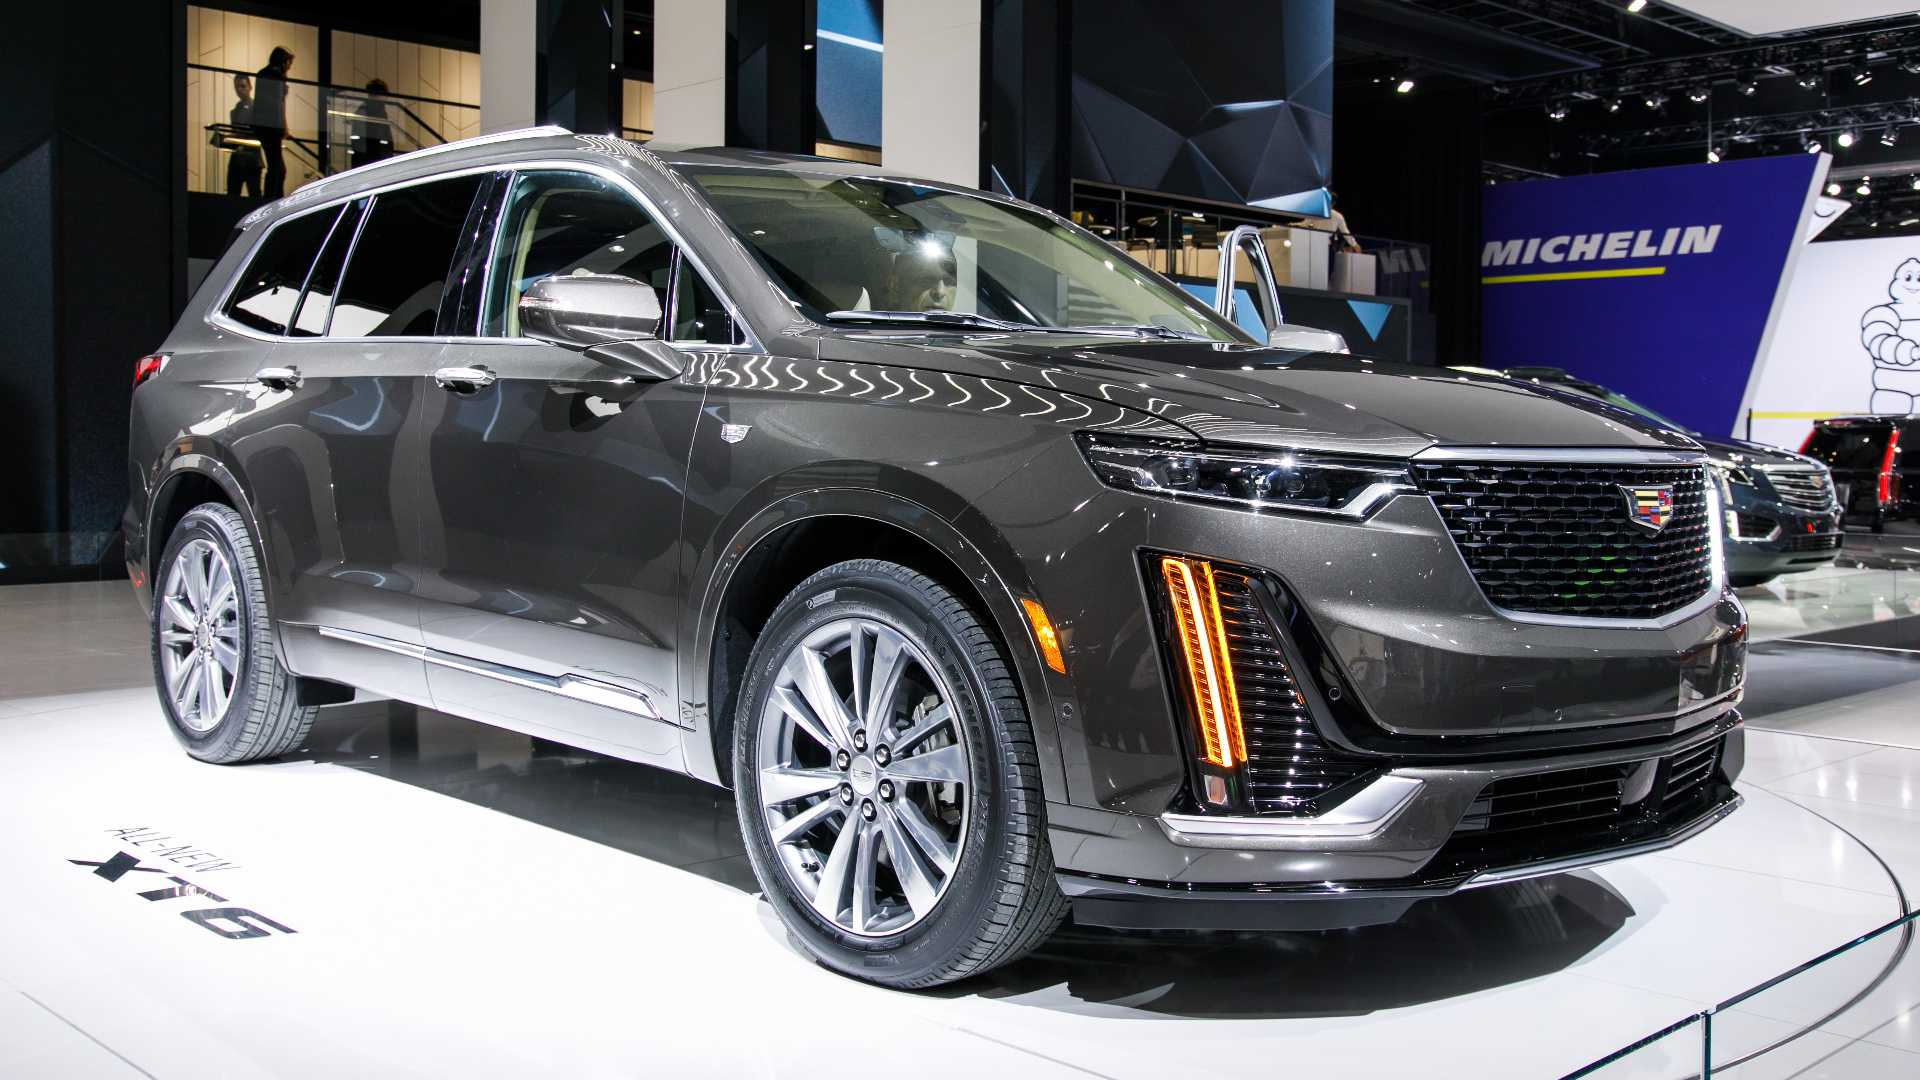 20 The Best 2020 Cadillac Xt6 Msrp History